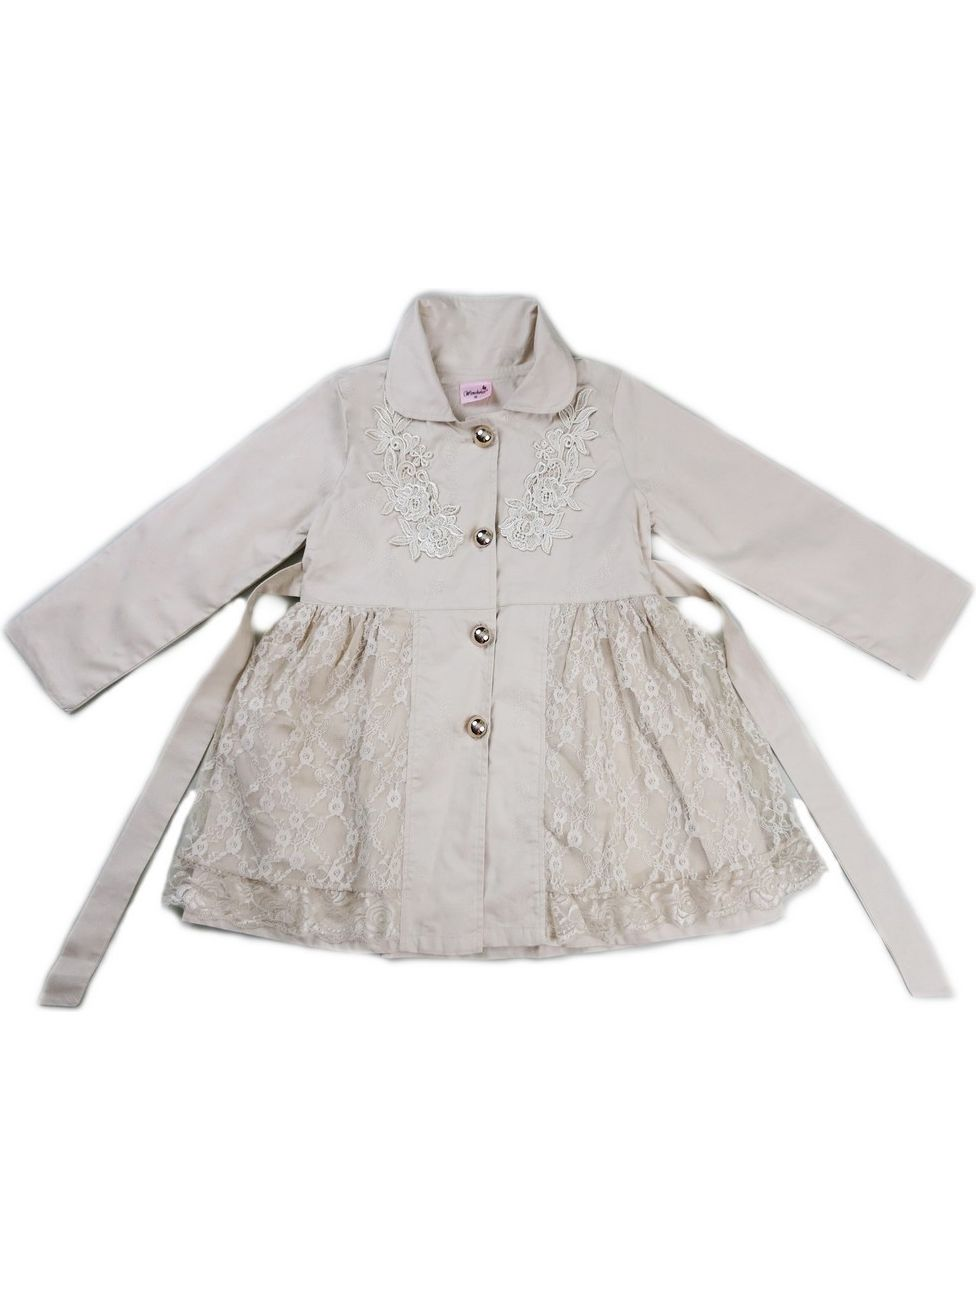 Wenchoice Girls Ivory Lace Wind-Resistant Long Sleeved Coat